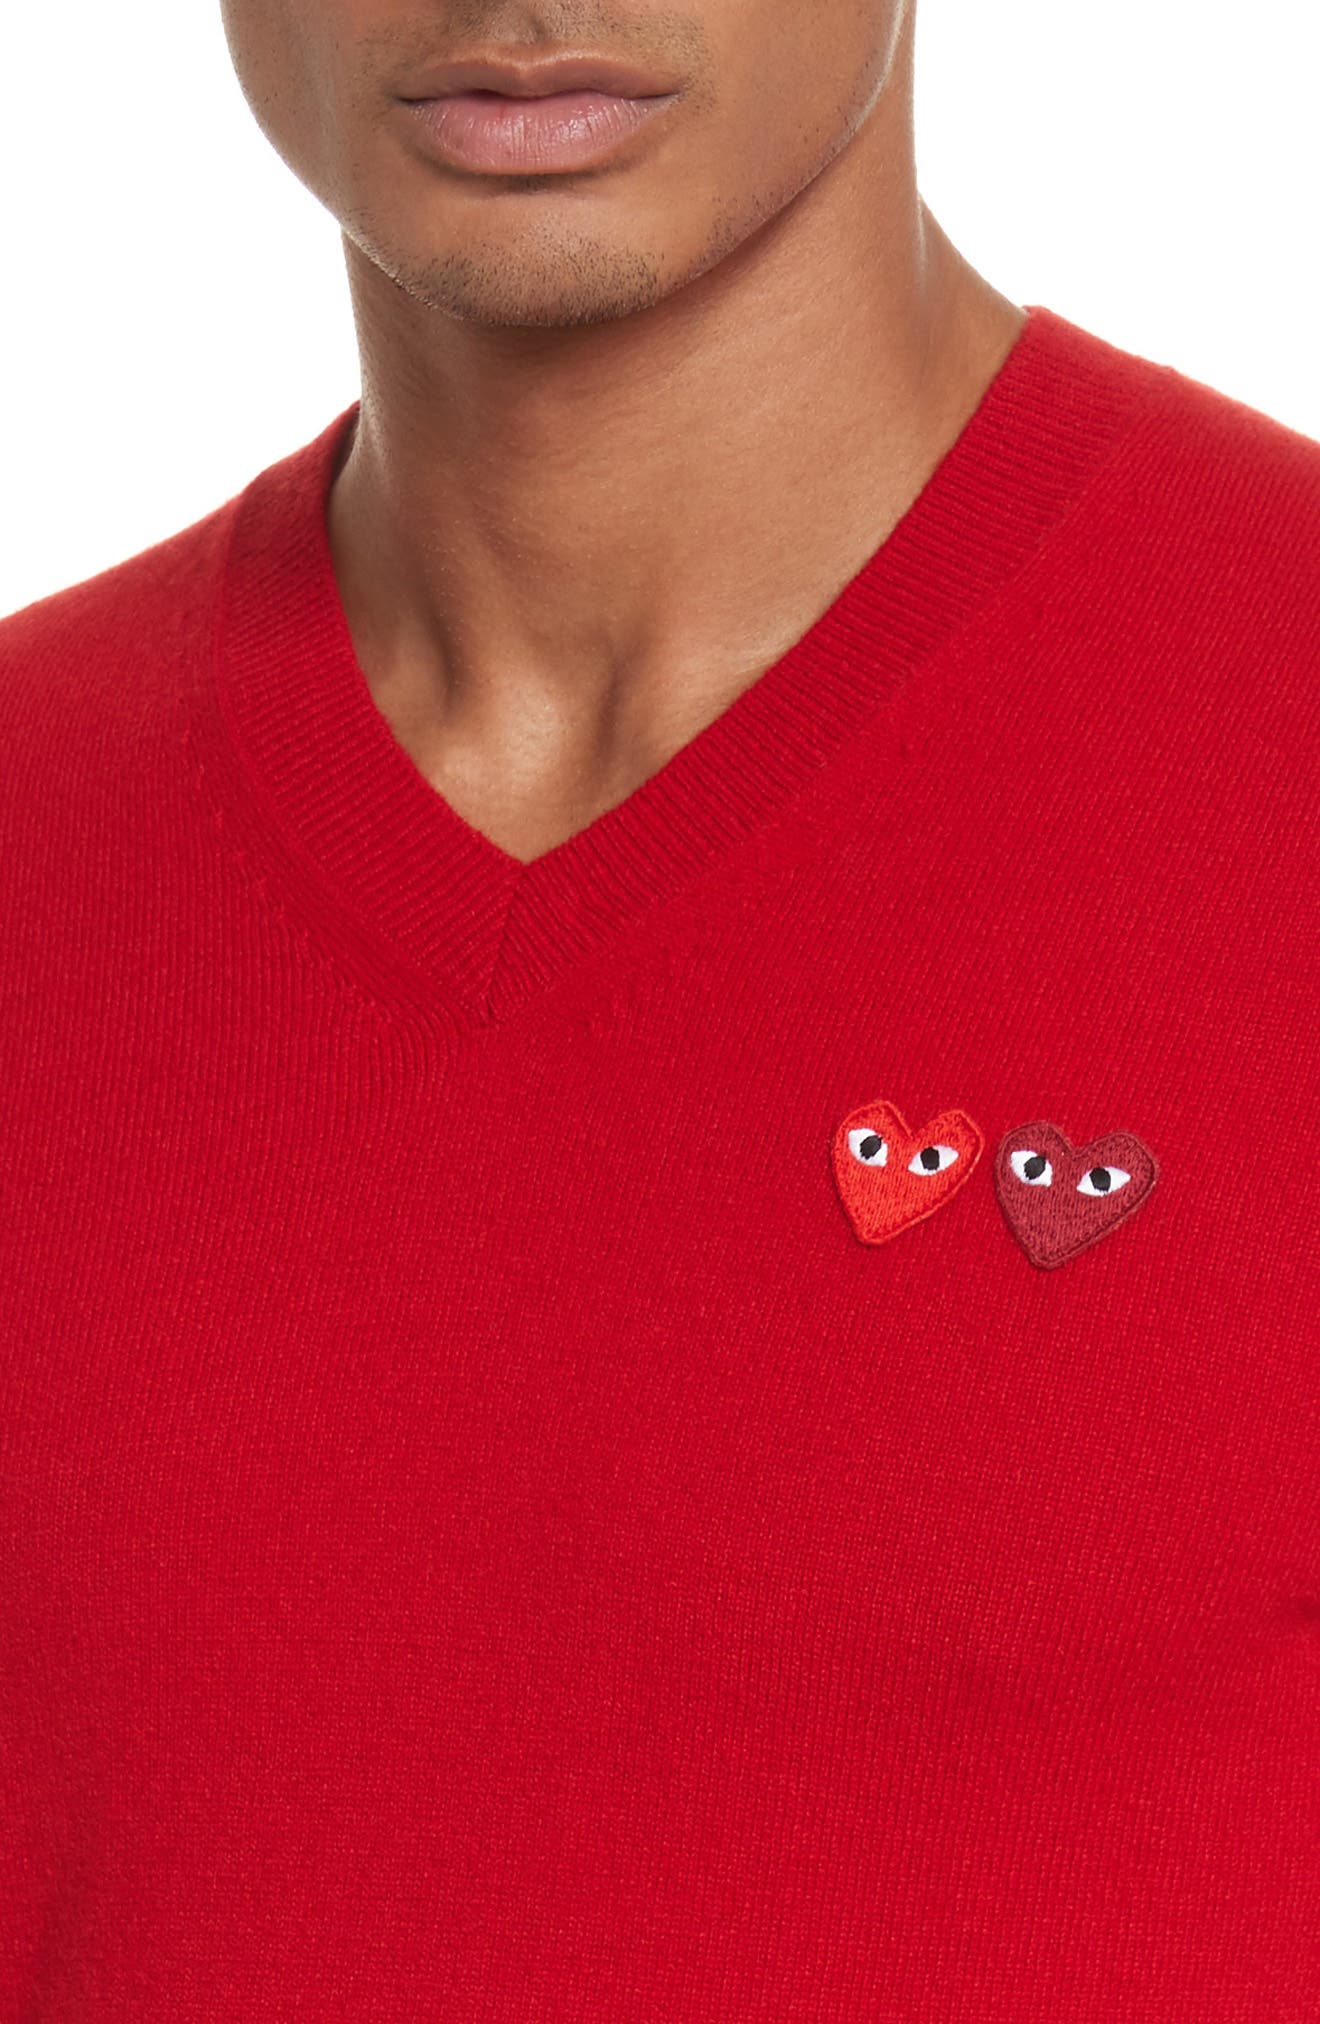 Wool Pullover,                             Alternate thumbnail 4, color,                             RED